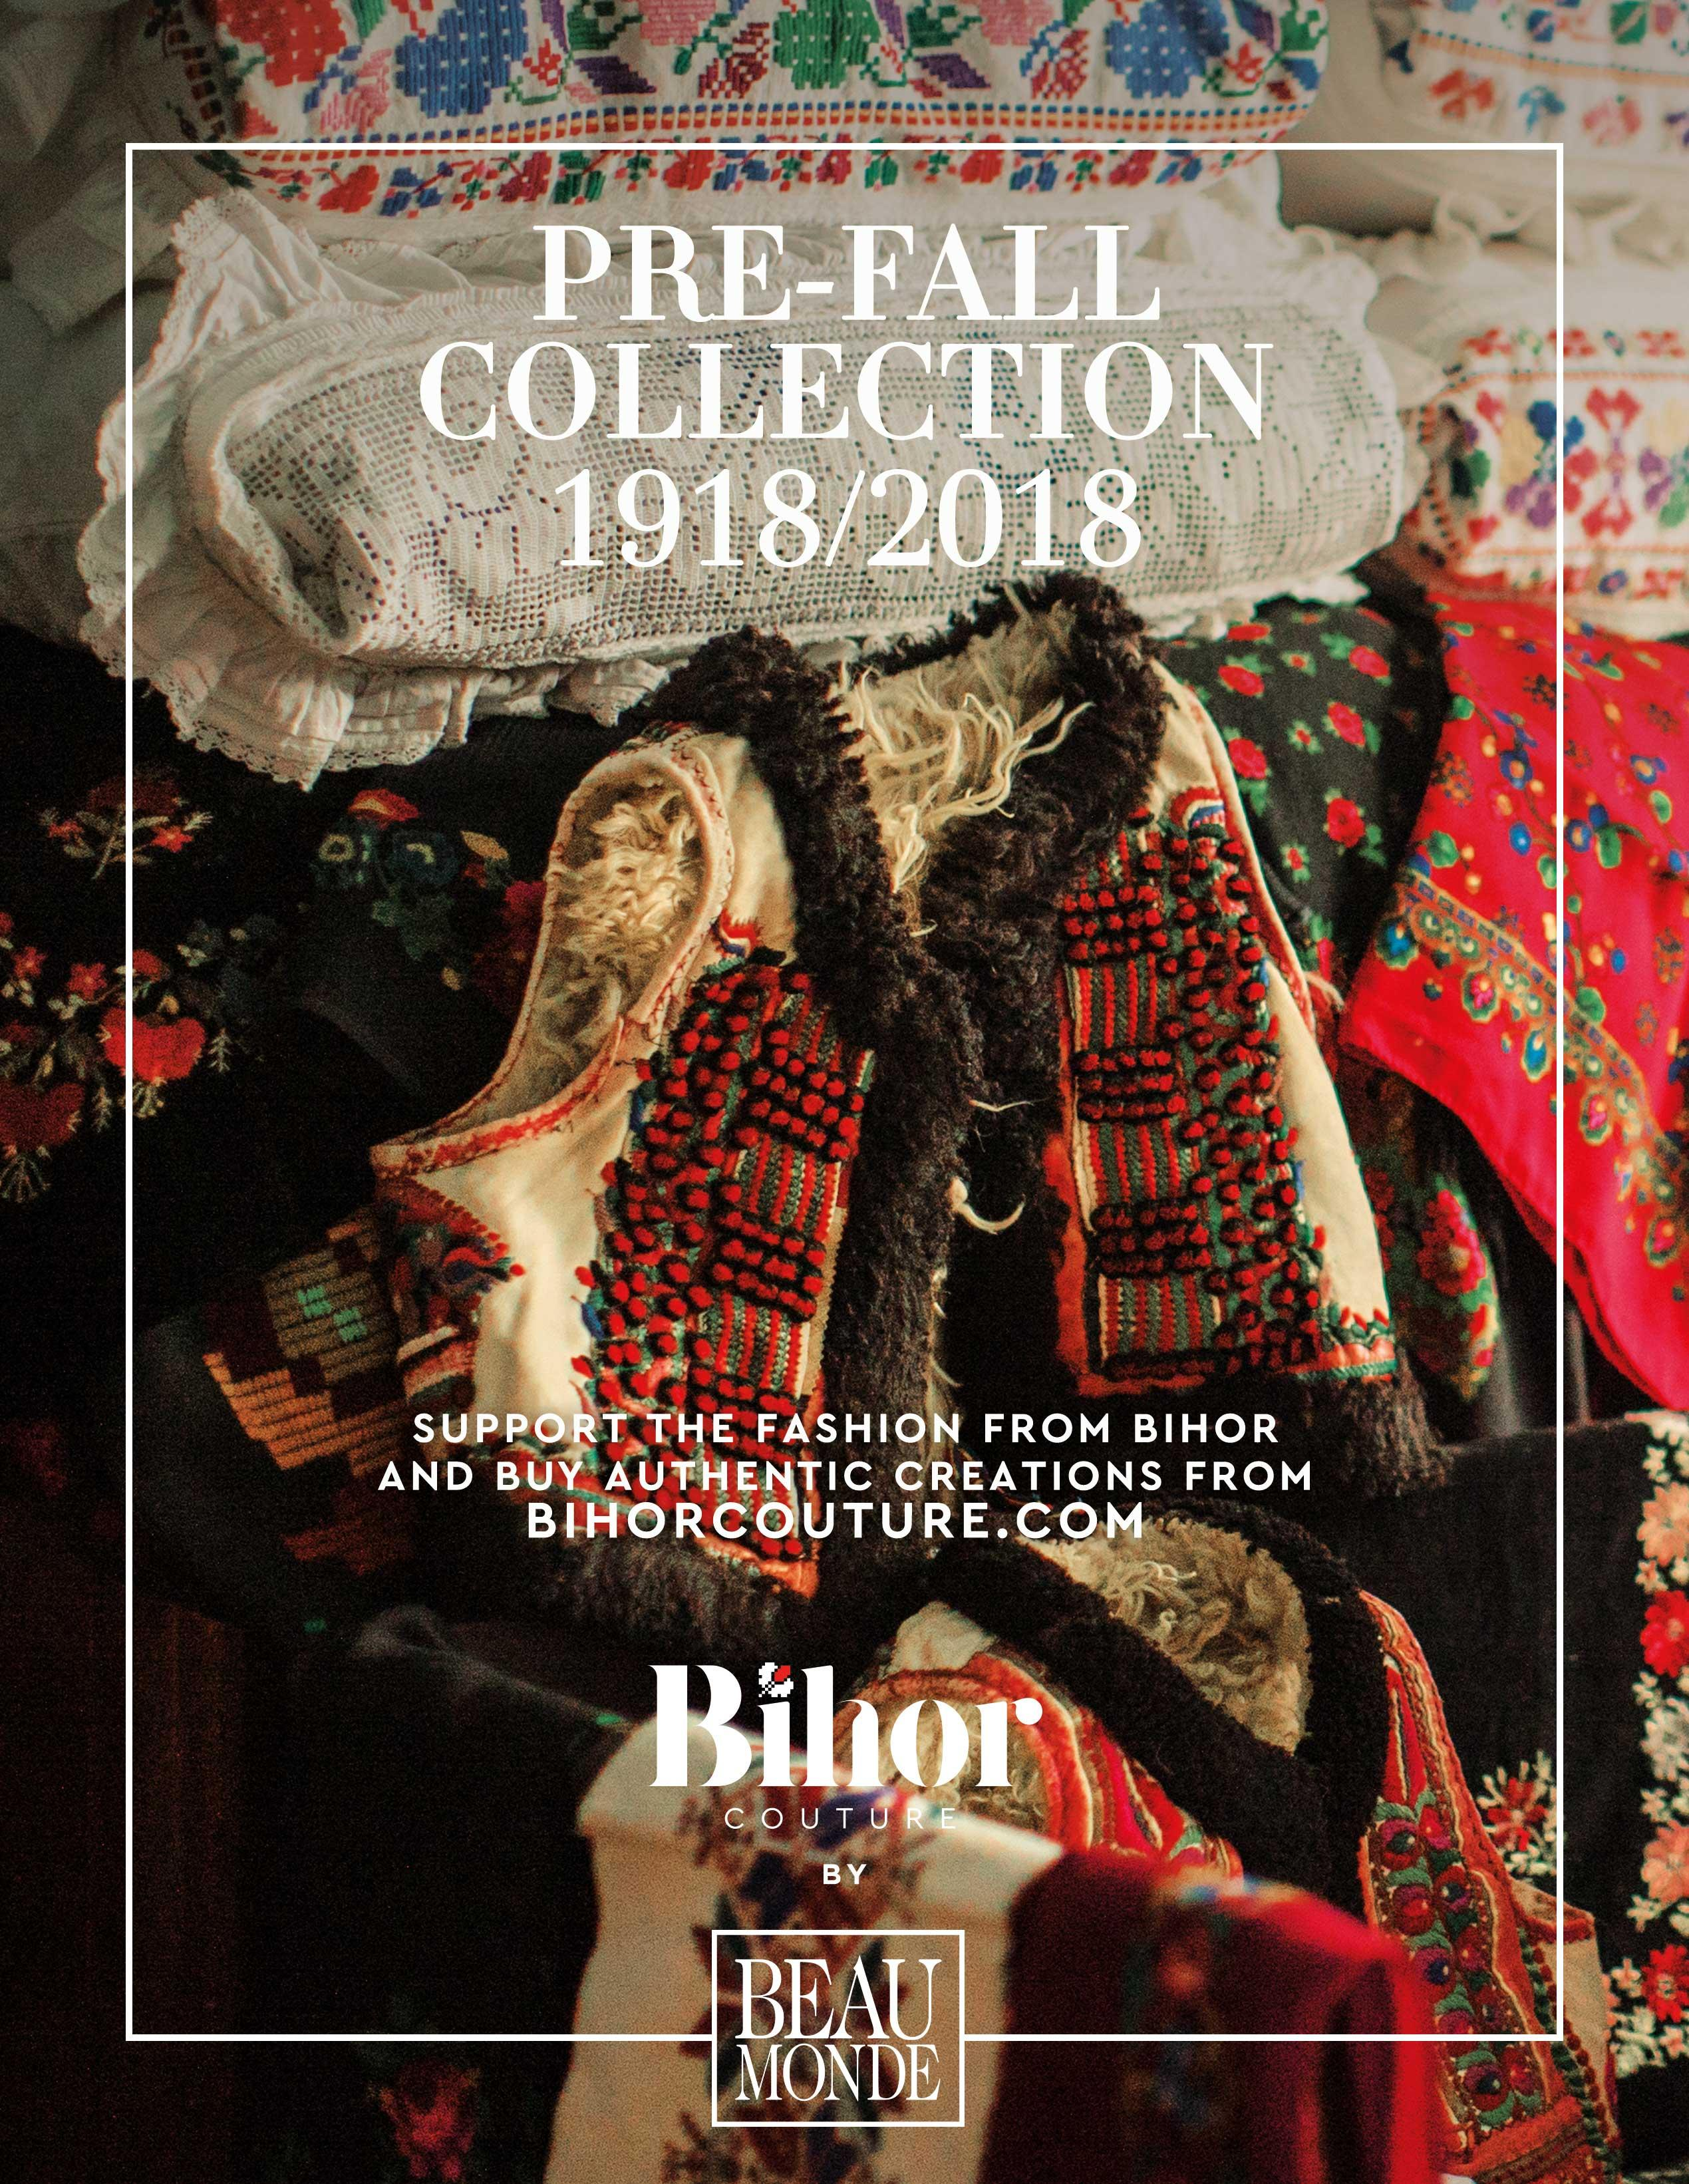 Bihor Couture Integrated Ad - Bihor Couture - The Story